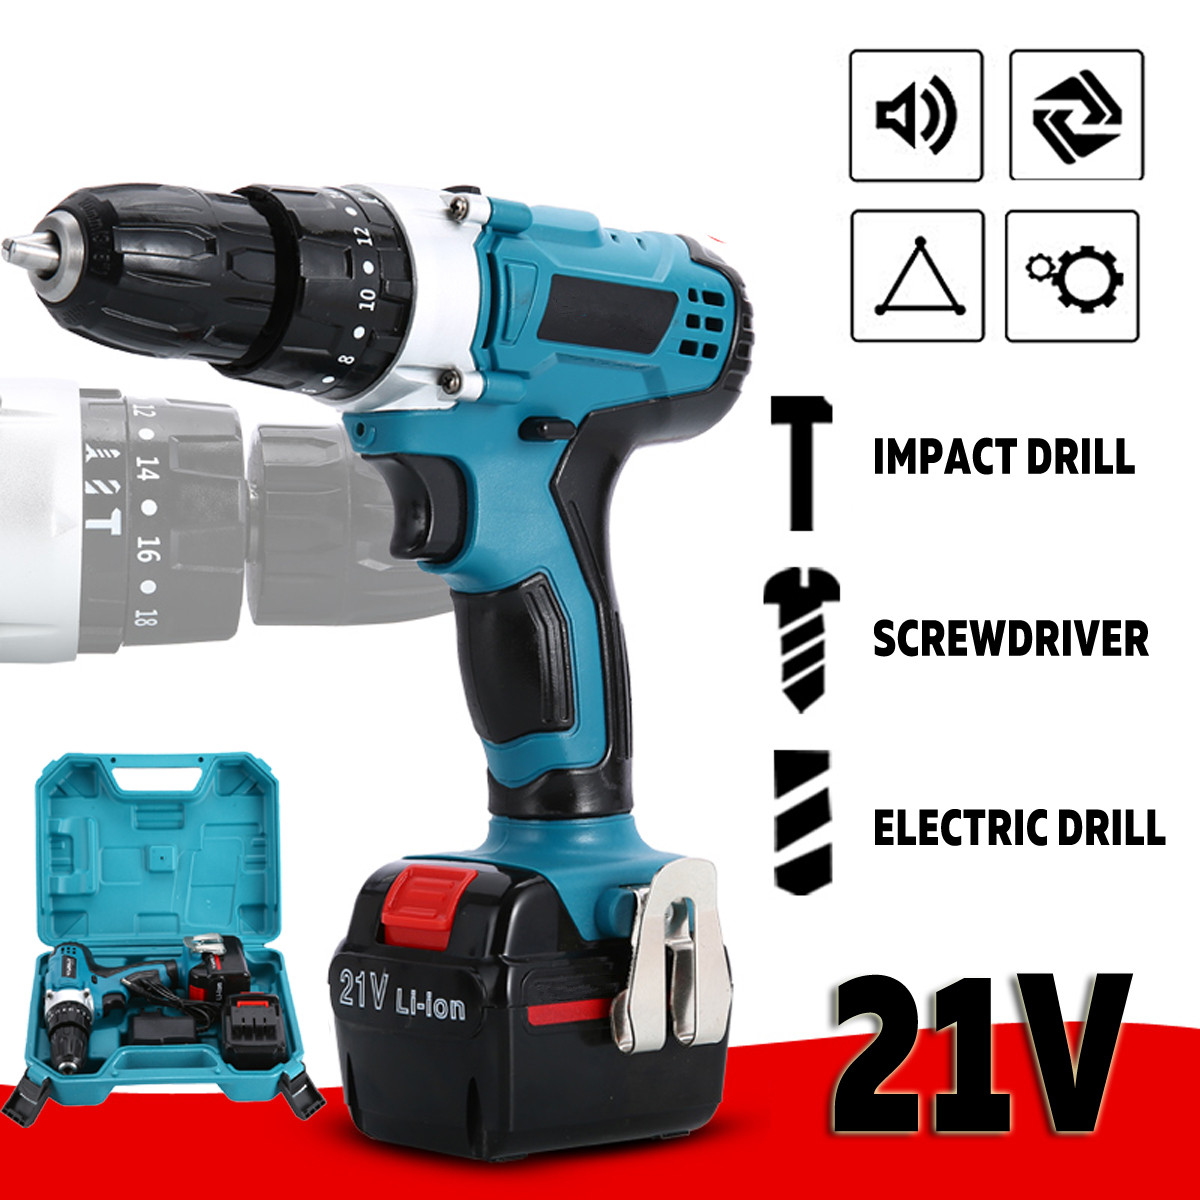 21V New Style Impact Drill Electric Screwdriver Electric Hand Drill Battery Cordless Hammer Drill Home Diy Power Tools+box21V New Style Impact Drill Electric Screwdriver Electric Hand Drill Battery Cordless Hammer Drill Home Diy Power Tools+box